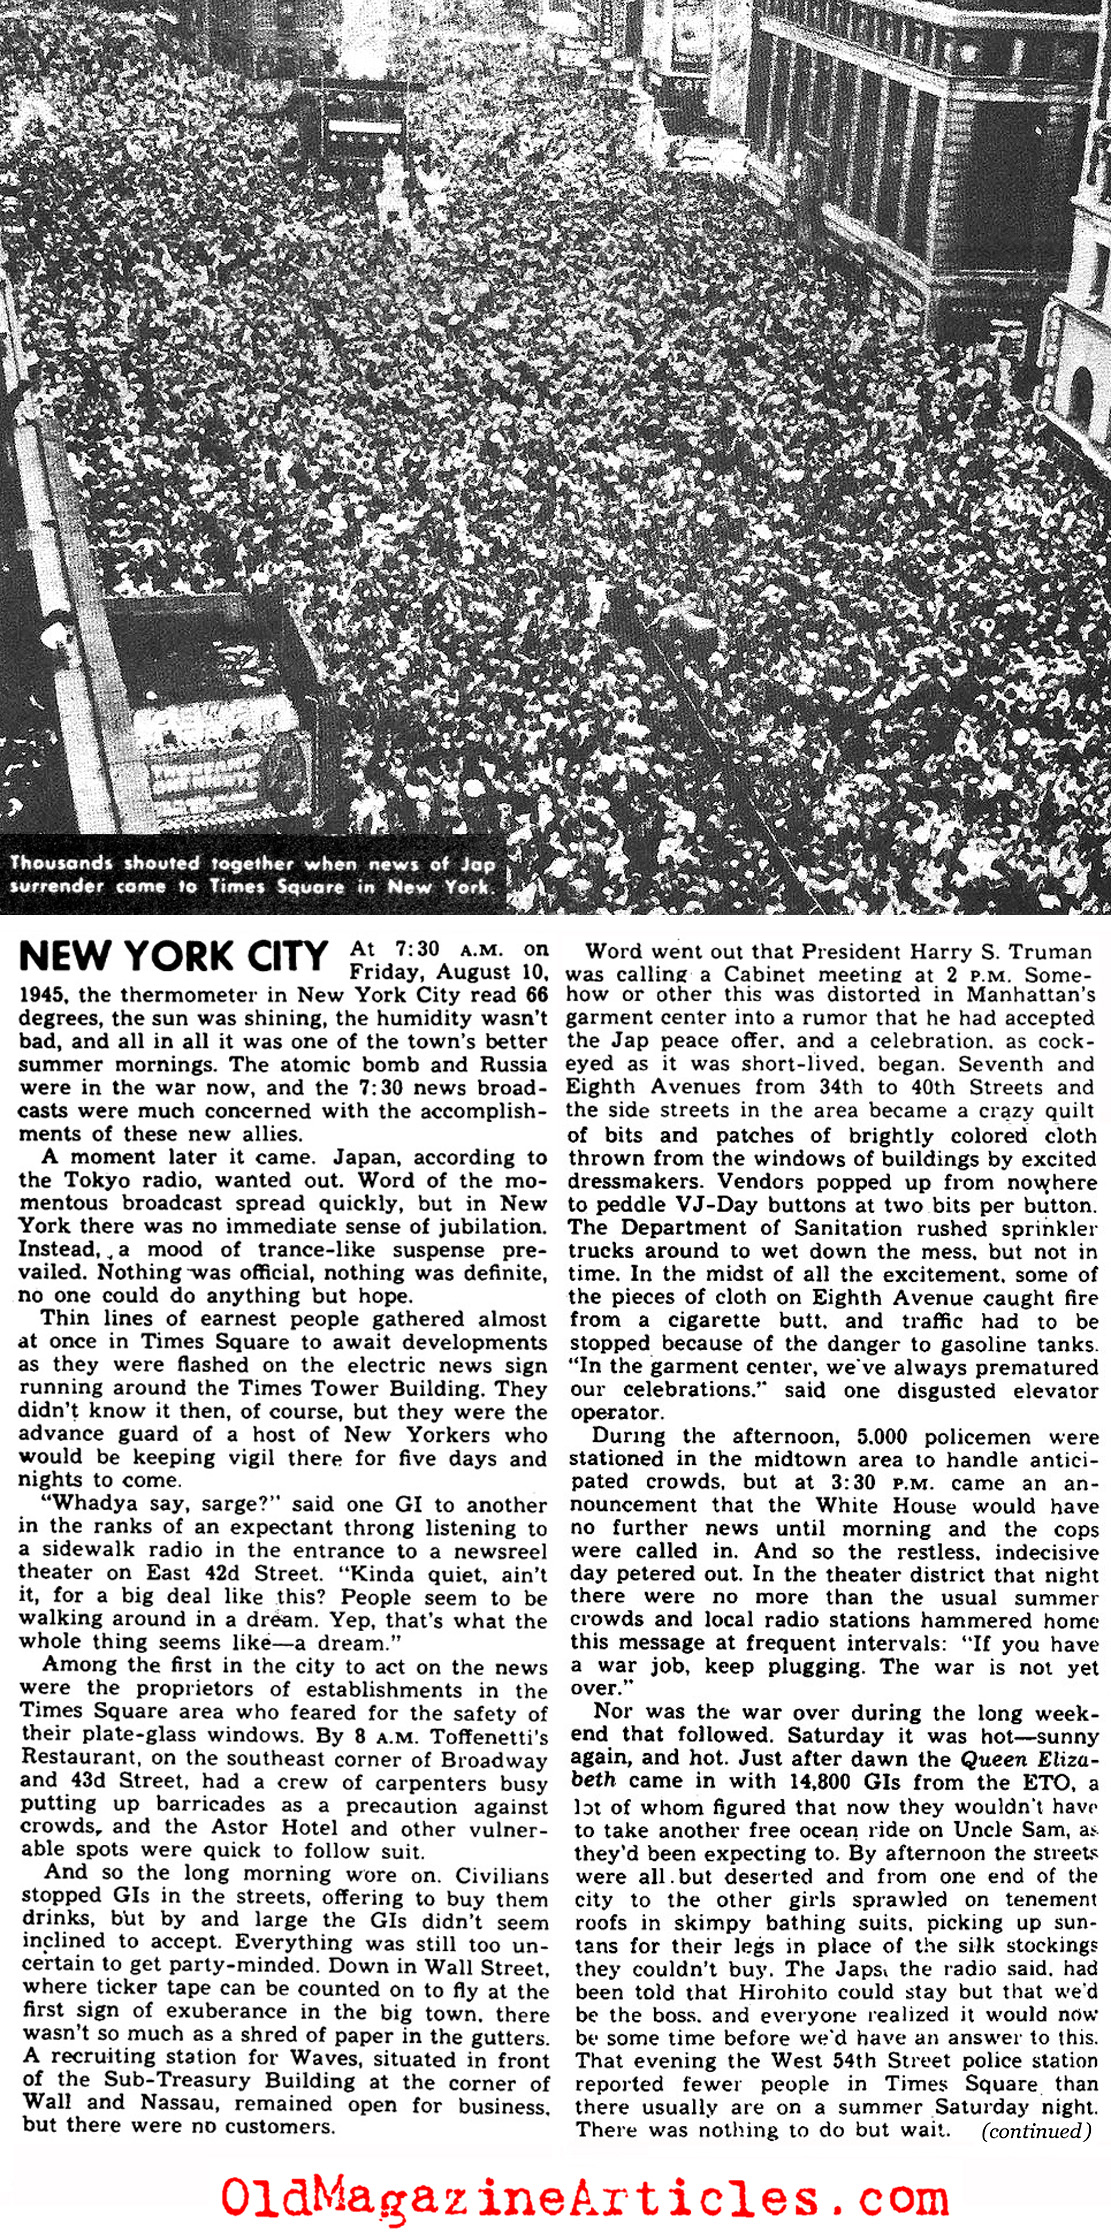 The attached YANK MAGAZINE article tells the story of what New York